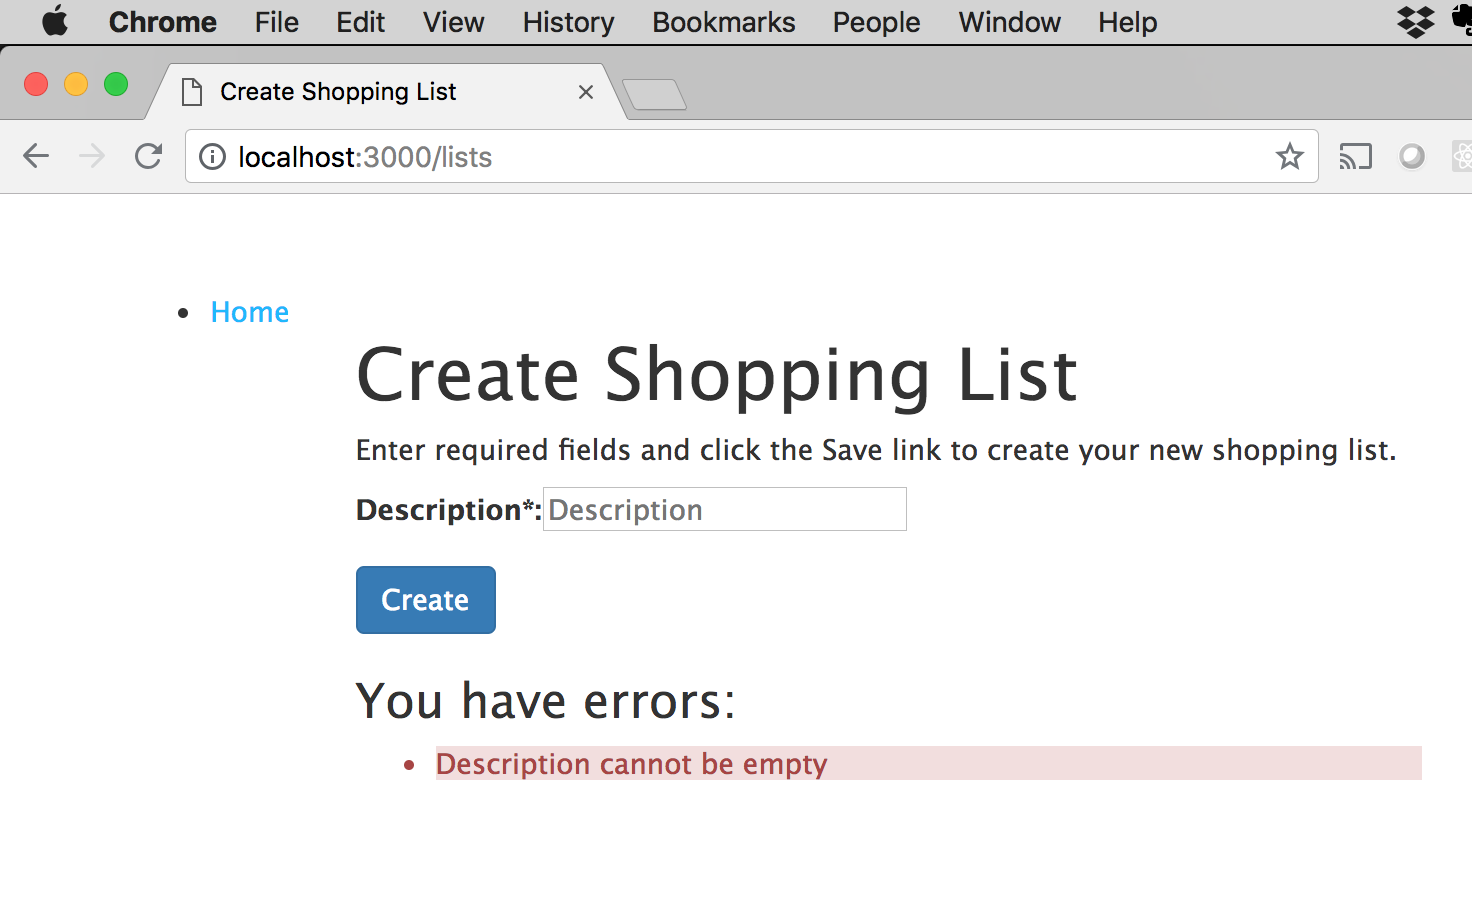 Create Shopping List page with validation error